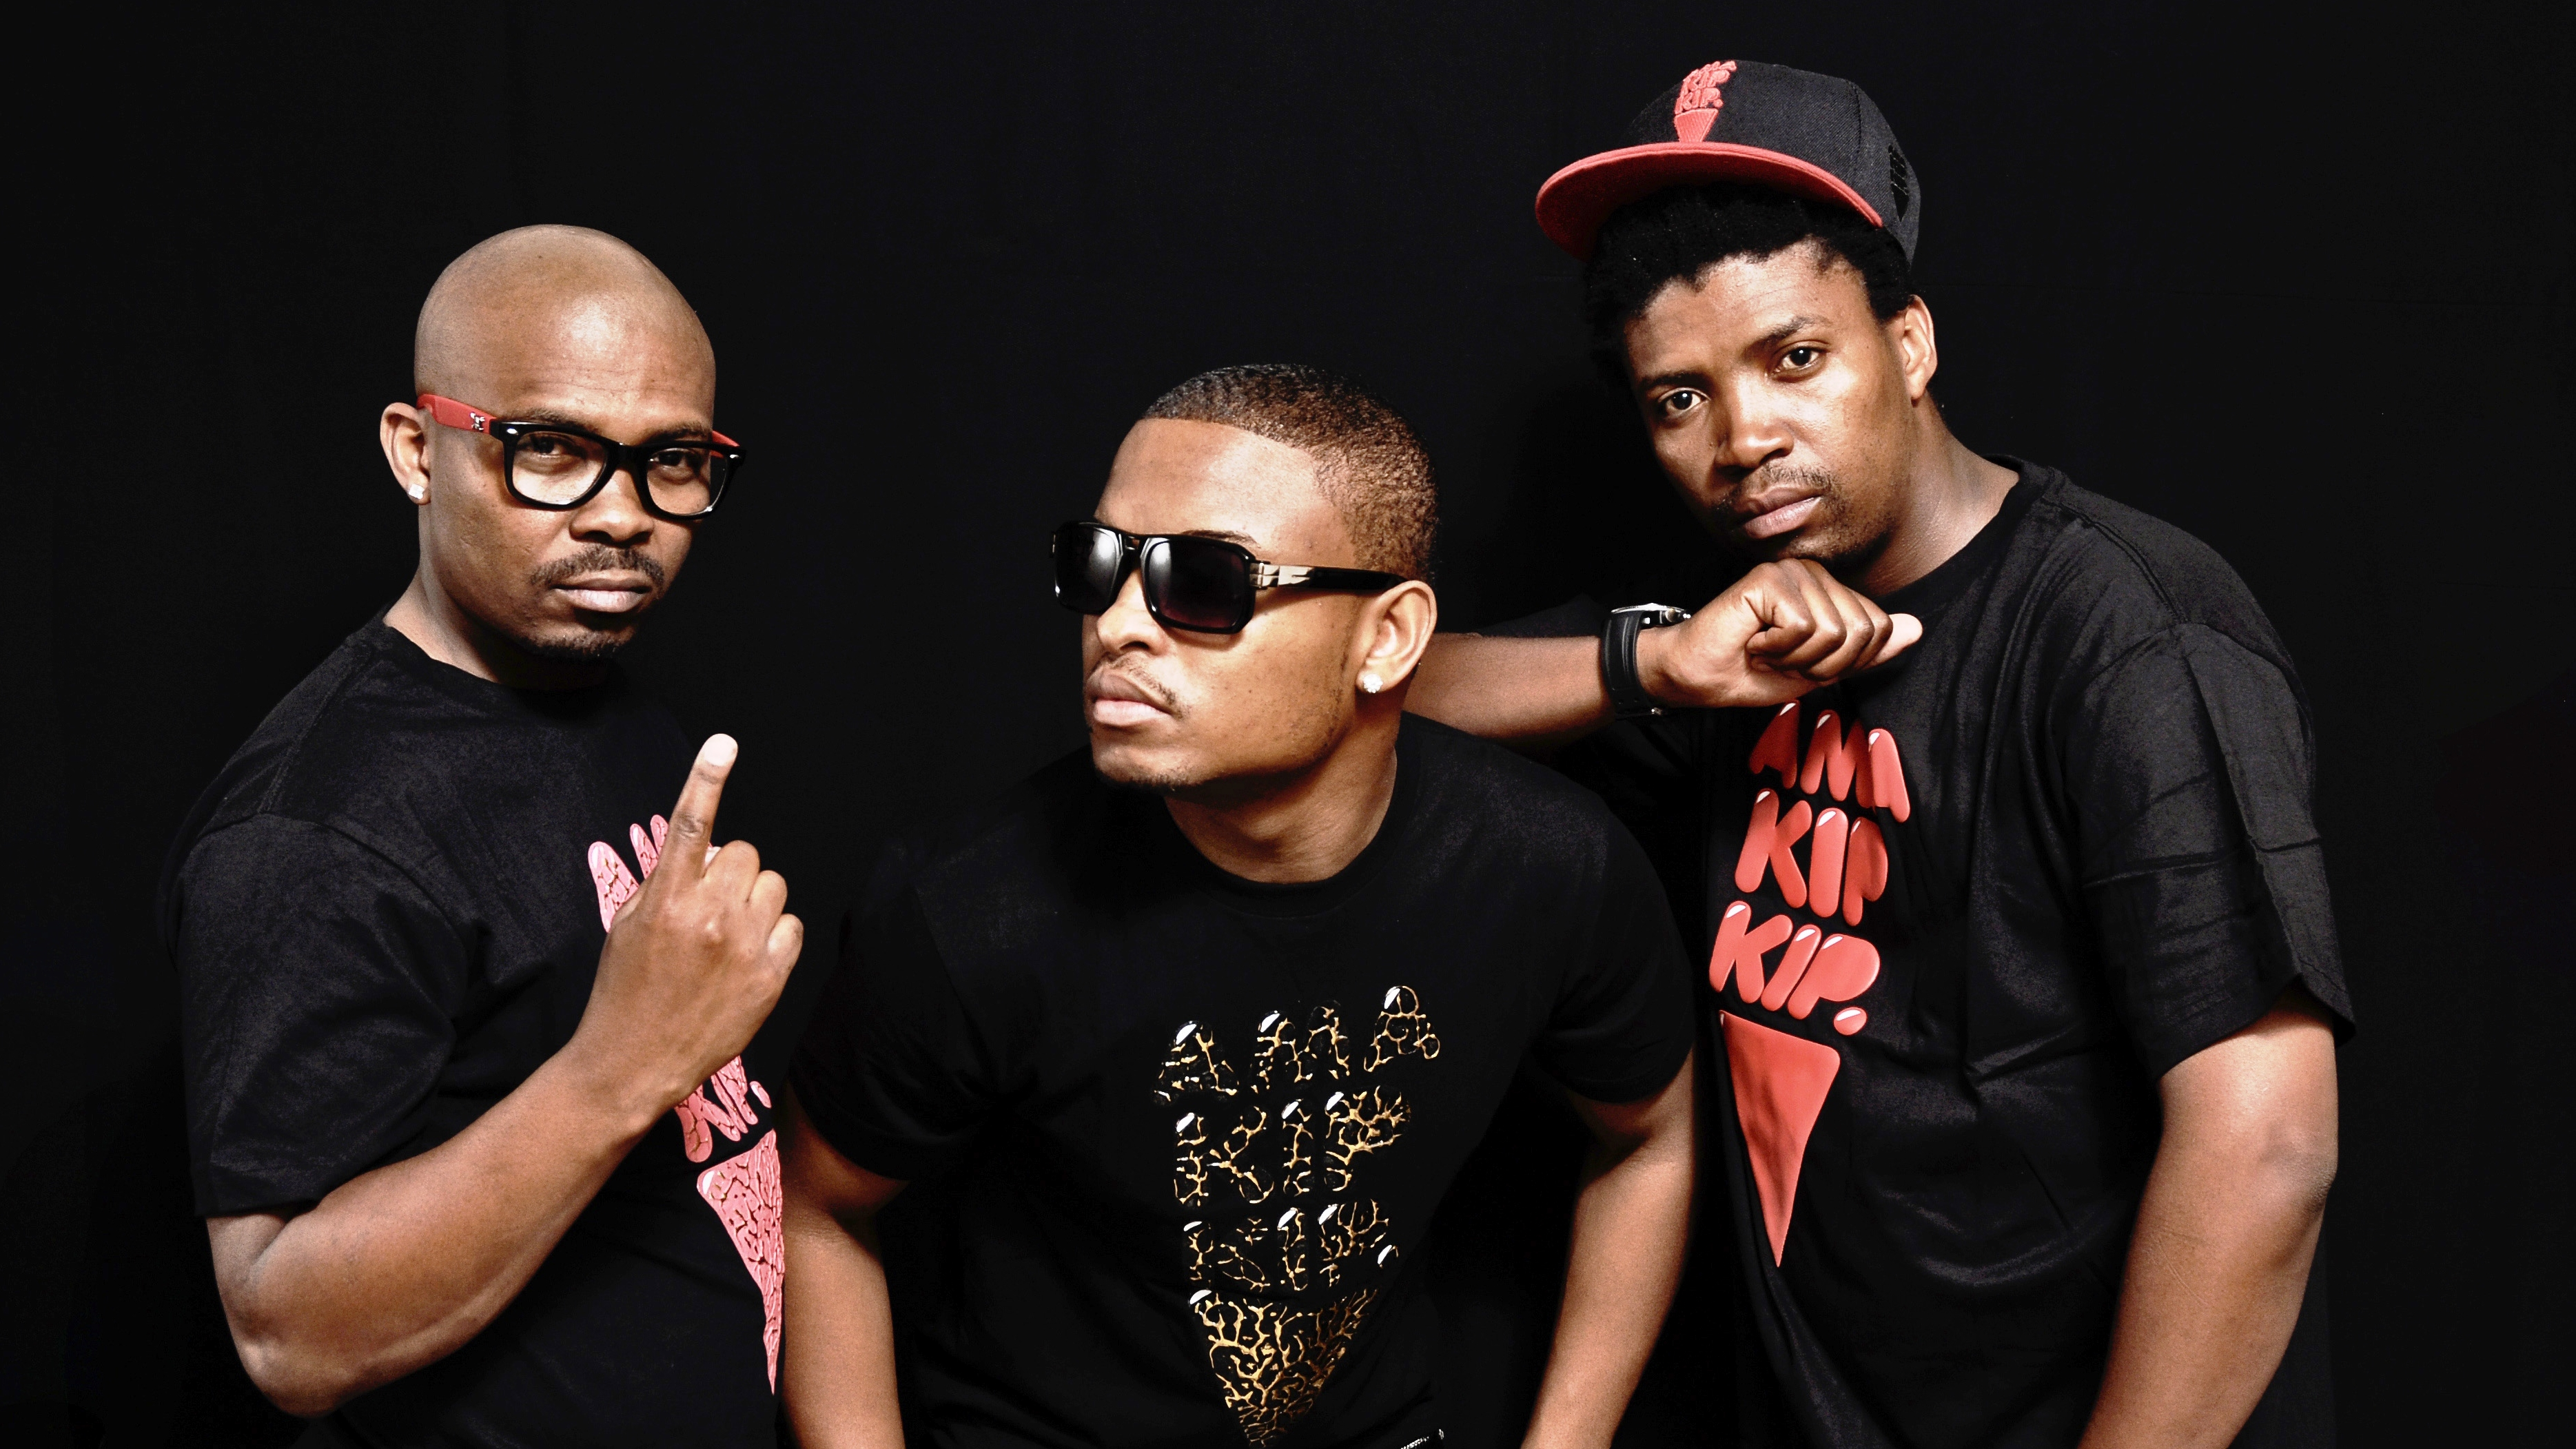 Teargas – Chance #HYPEThrowback 051511 shows bet awards nom africa teargas